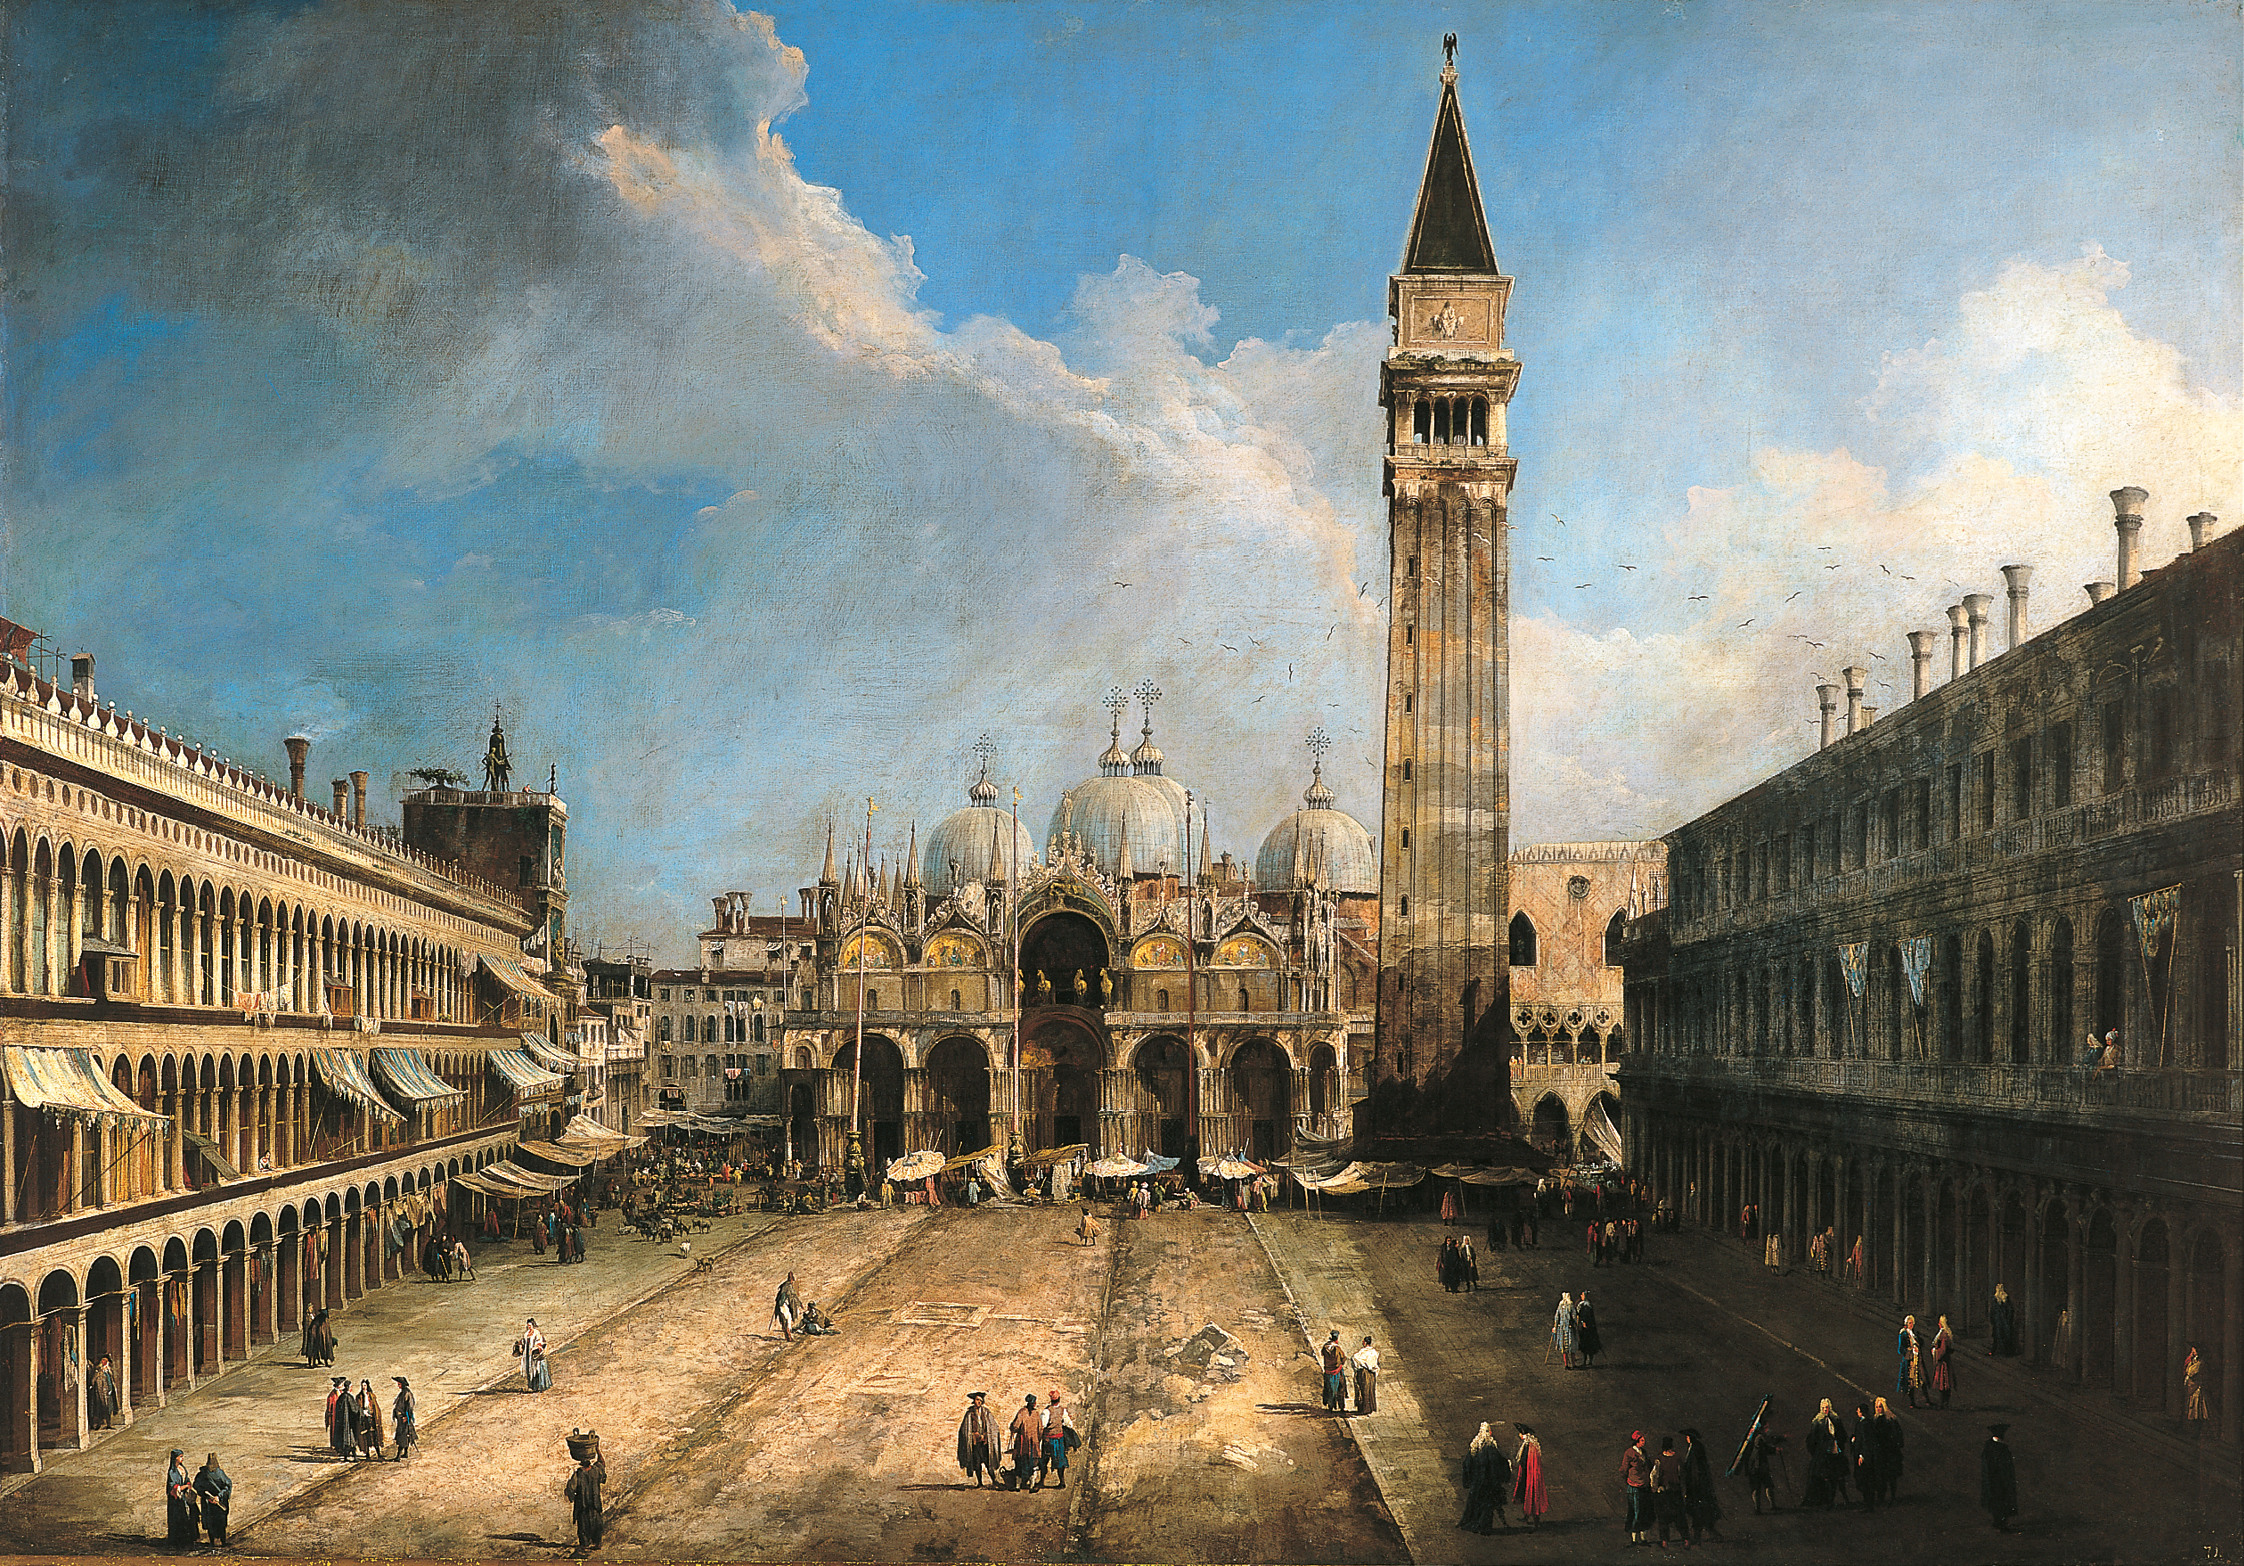 Canaletto.  View of Piazza San Marco, Venice , c. 1723-1724. 142,5 x 204,4 cm. Museo Thyssen-Bornemisza, Madrid.